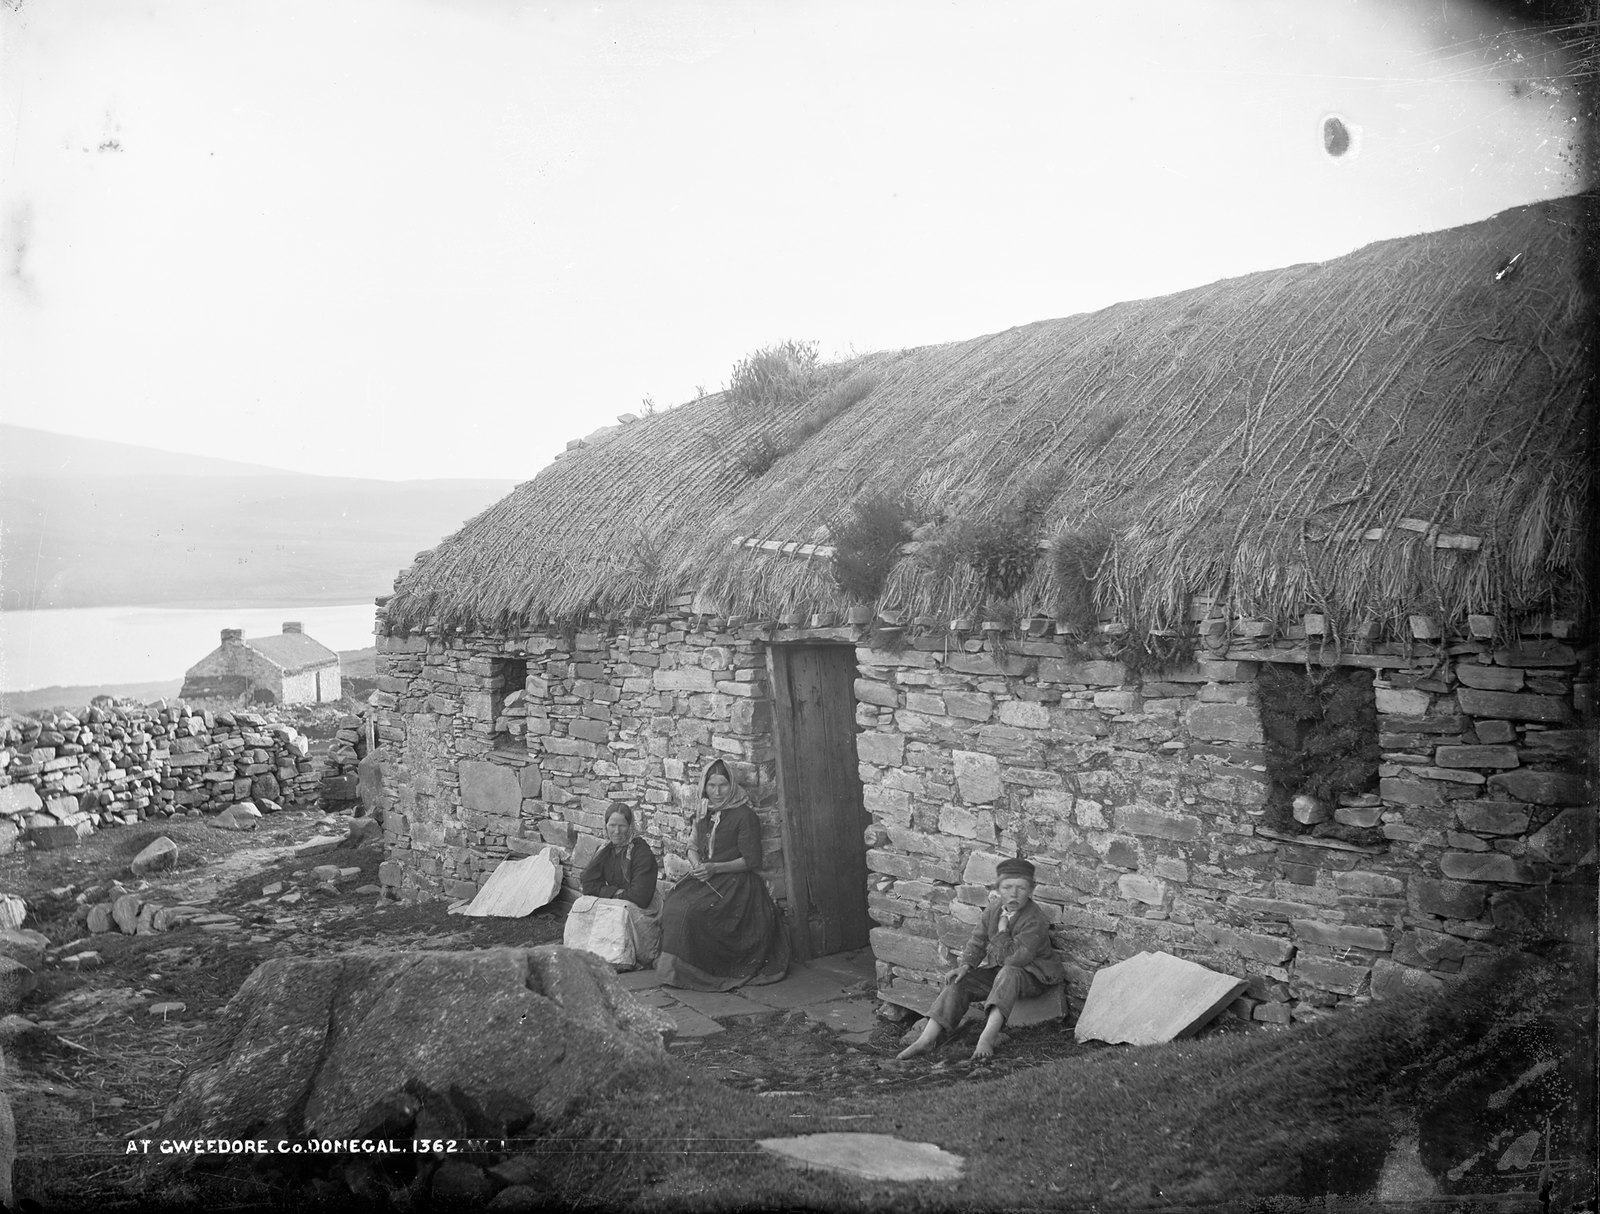 At Gweedore, Co. Donegal | by National Library of Ireland on The Commons